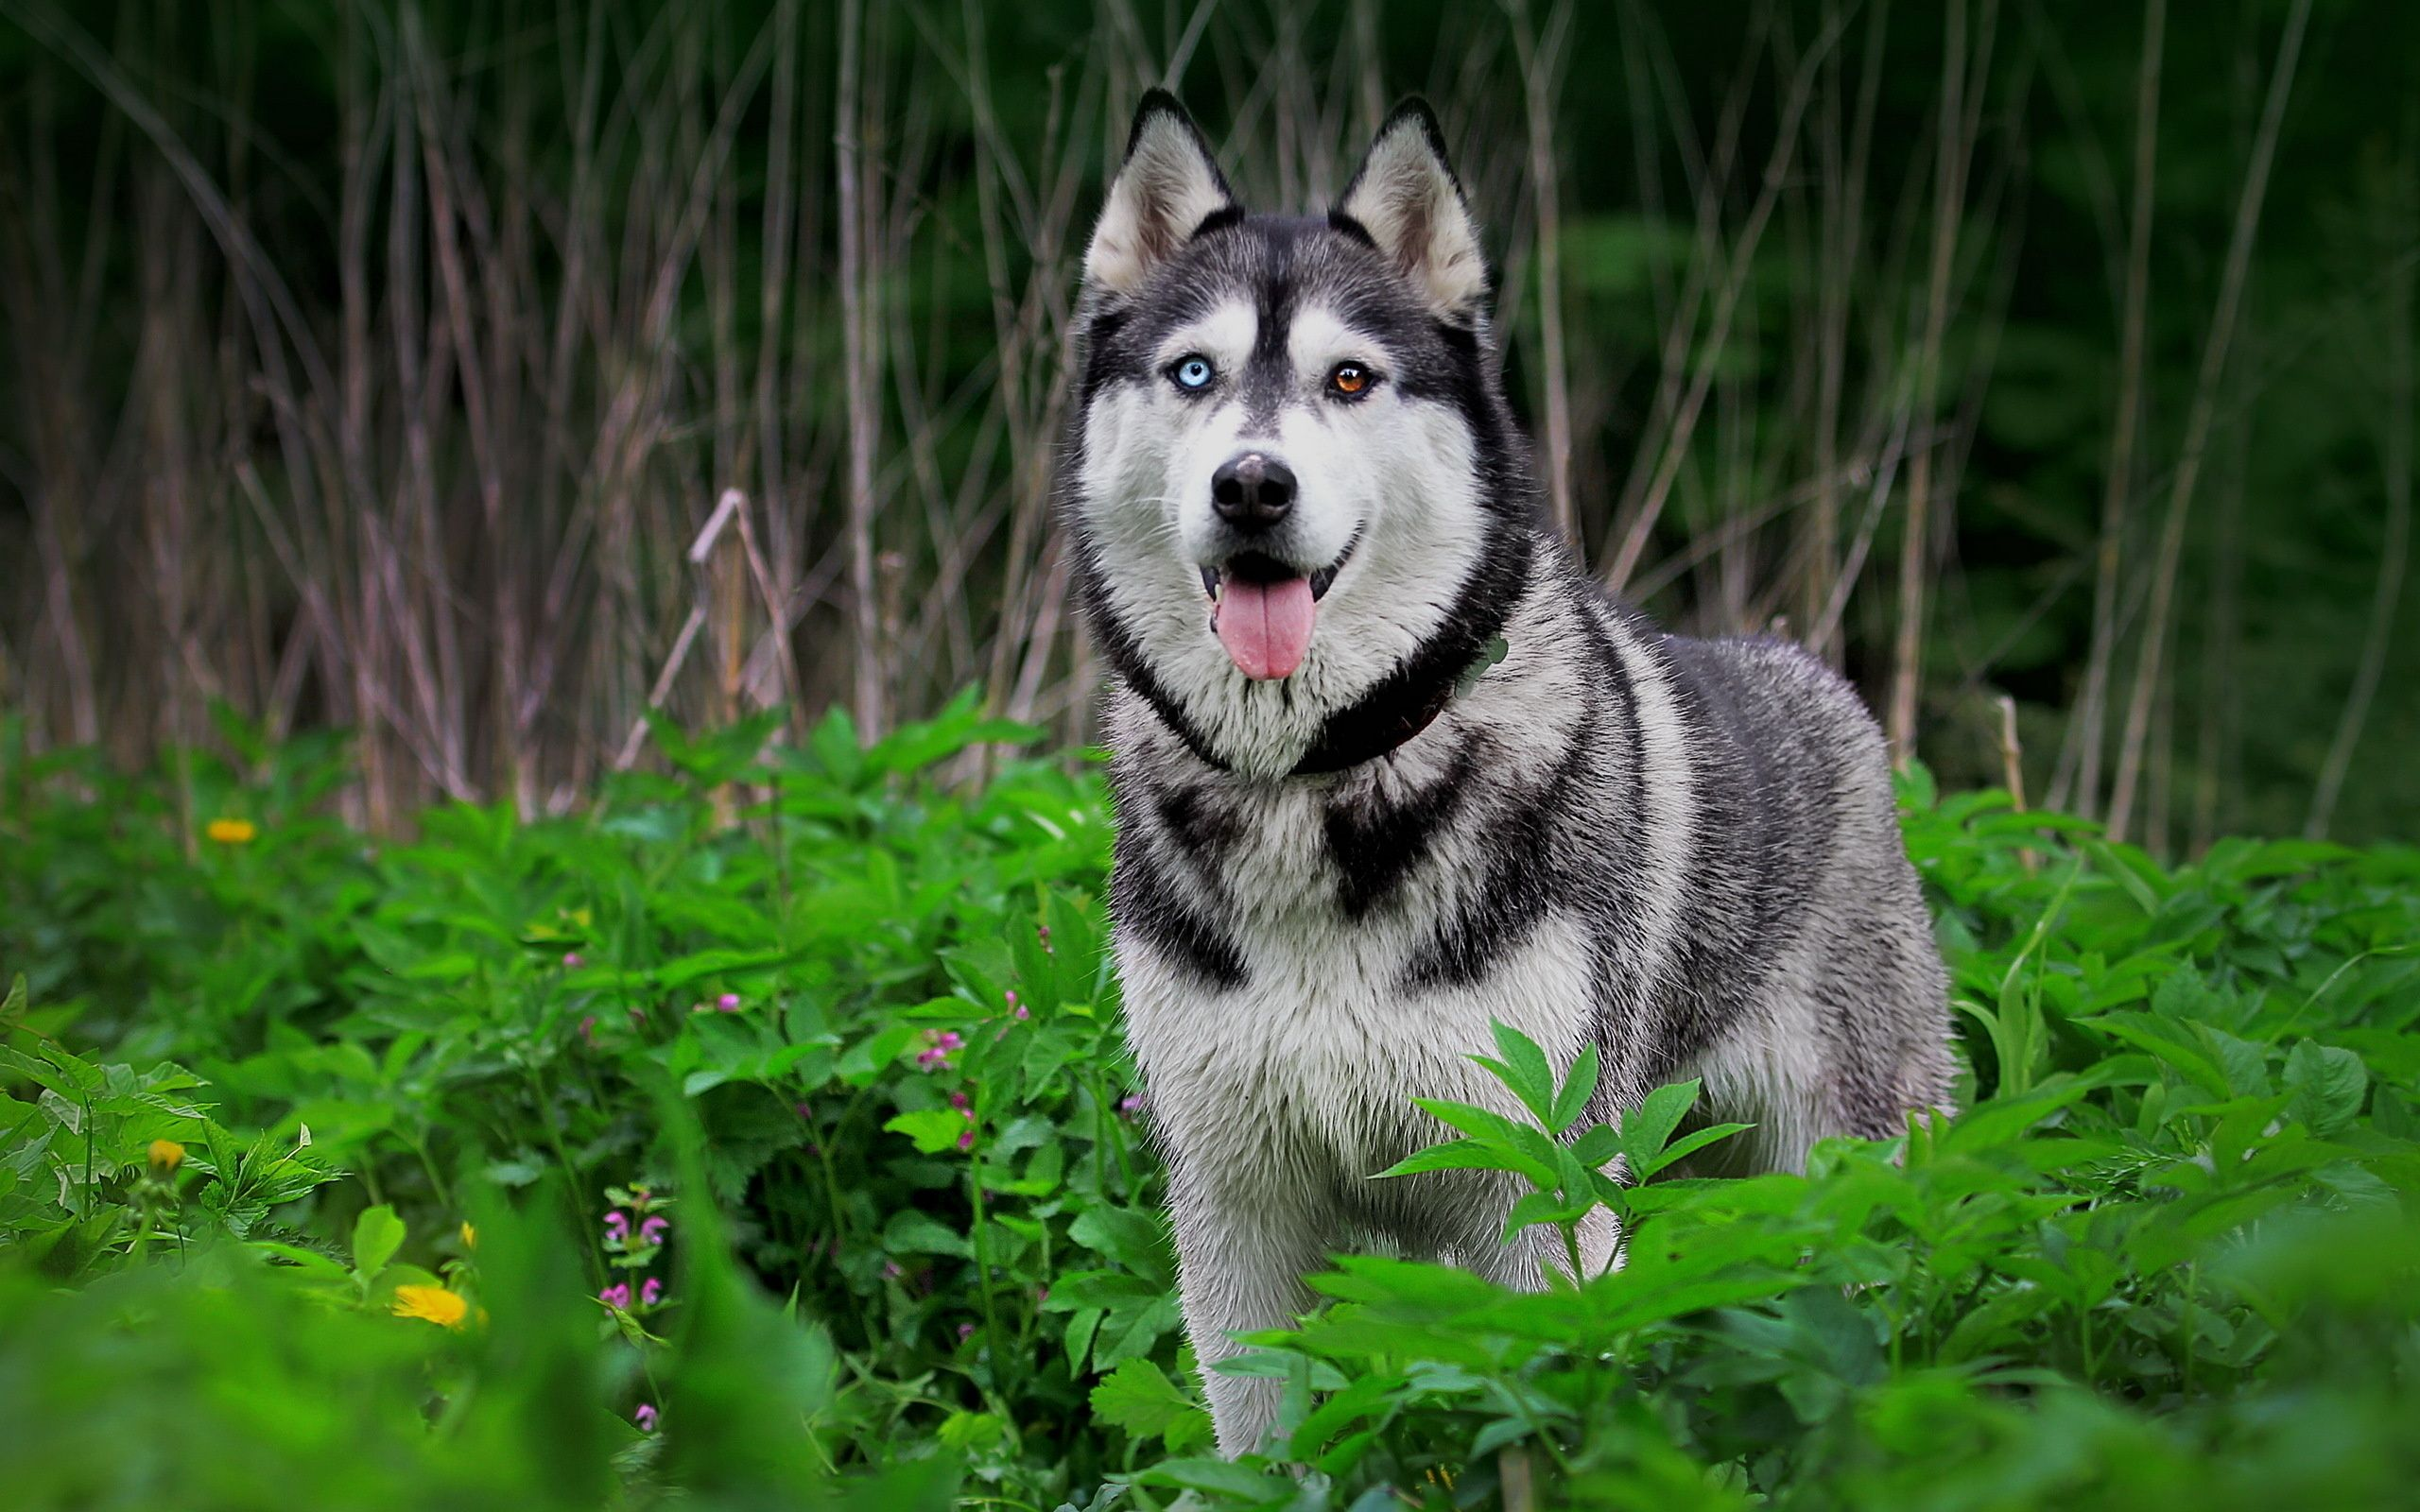 siberian husky dog full hd wallpaper wallpaper | places to visit